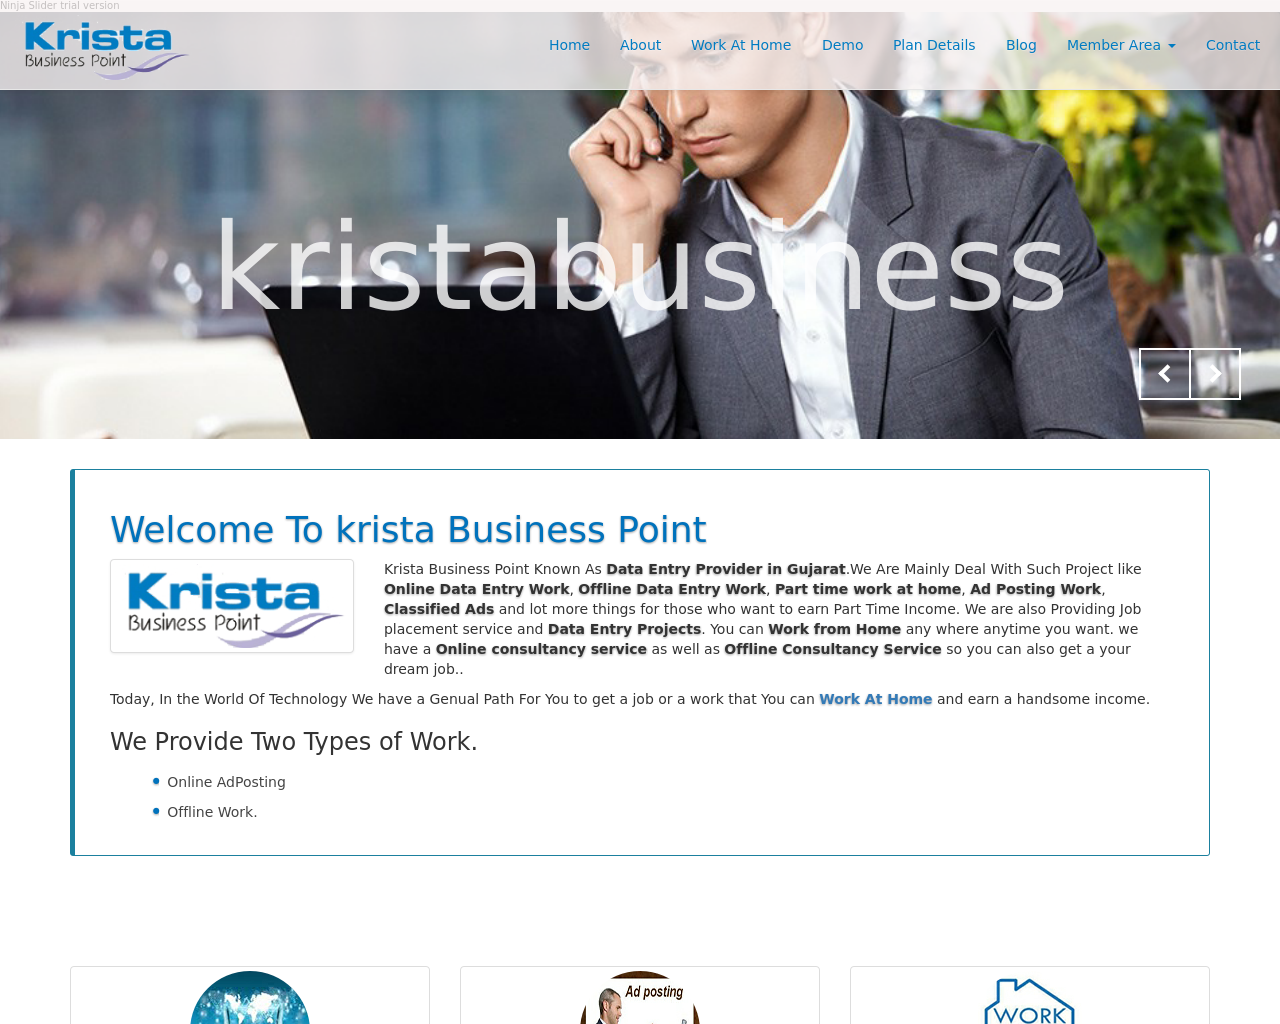 Krista-Business-Point-Advertising-Reviews-Pricing